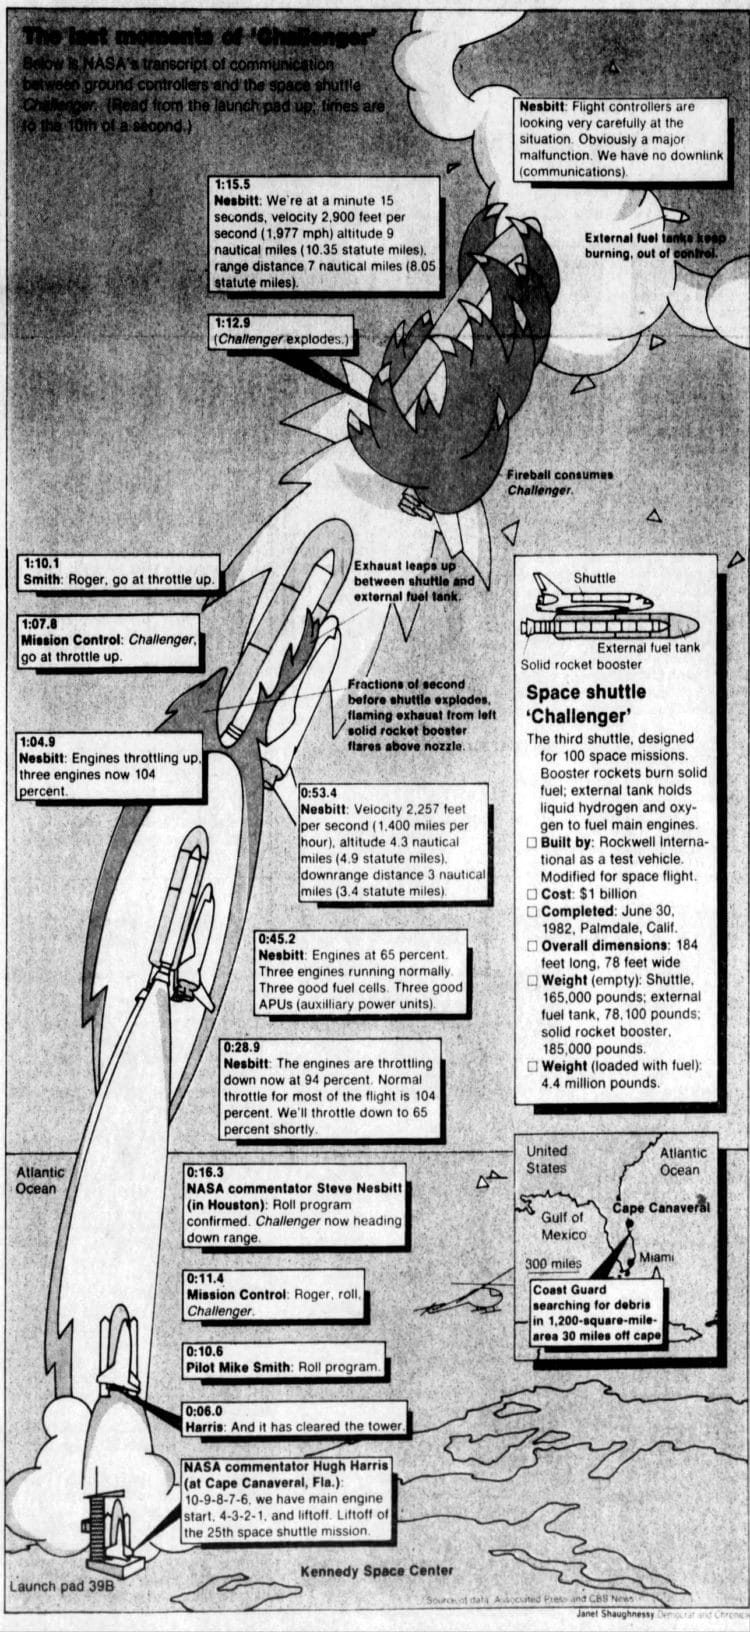 The Lasst moments of Space Shuttle Challenger - Democrat and Chronicle Jan 29 1986